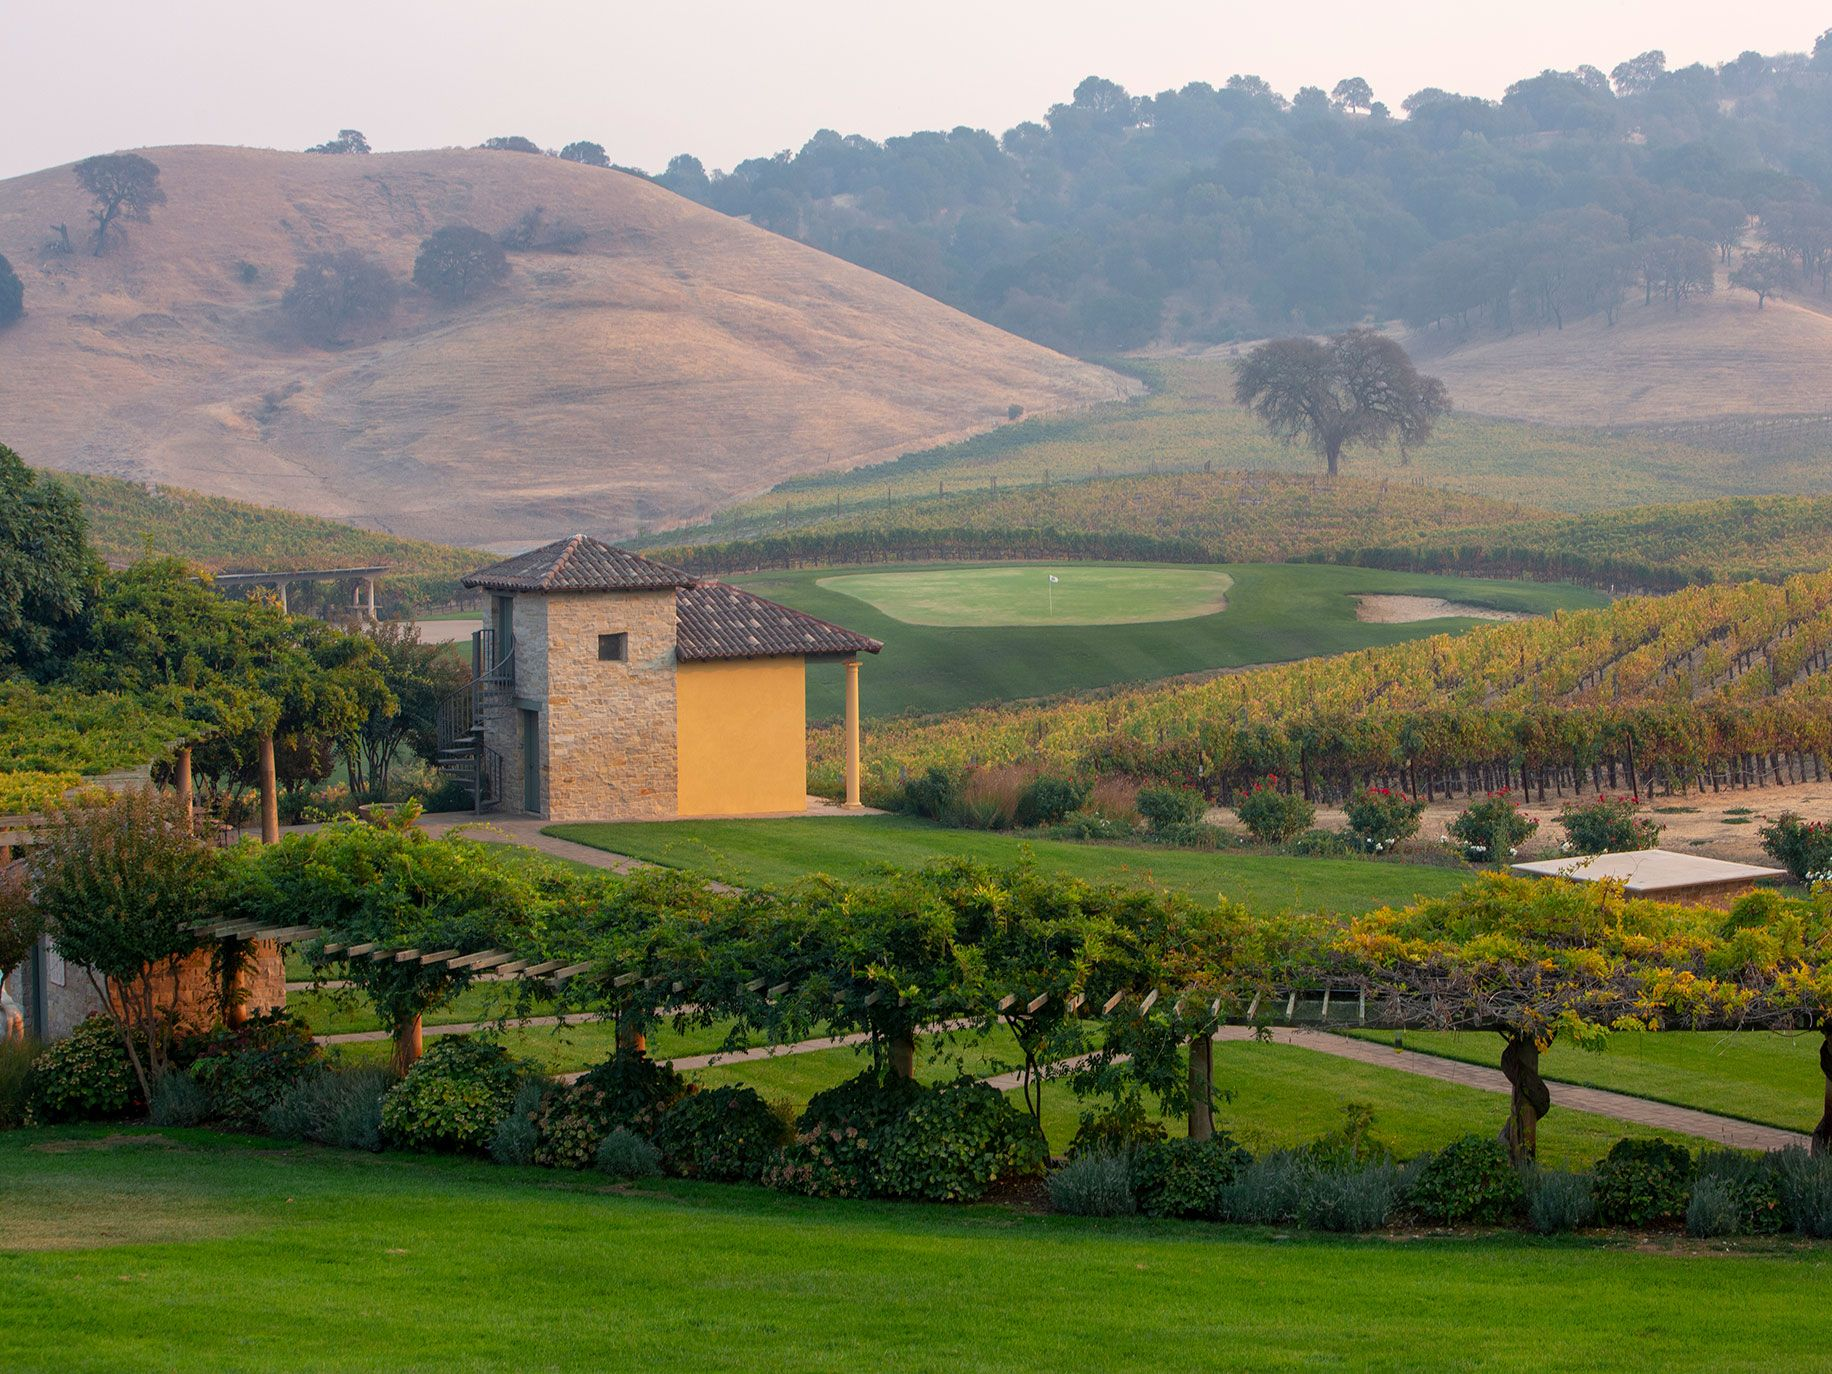 The Cheng's Tuscan-inspired home is nestled in the rolling vineyard hills of Napa Valley.